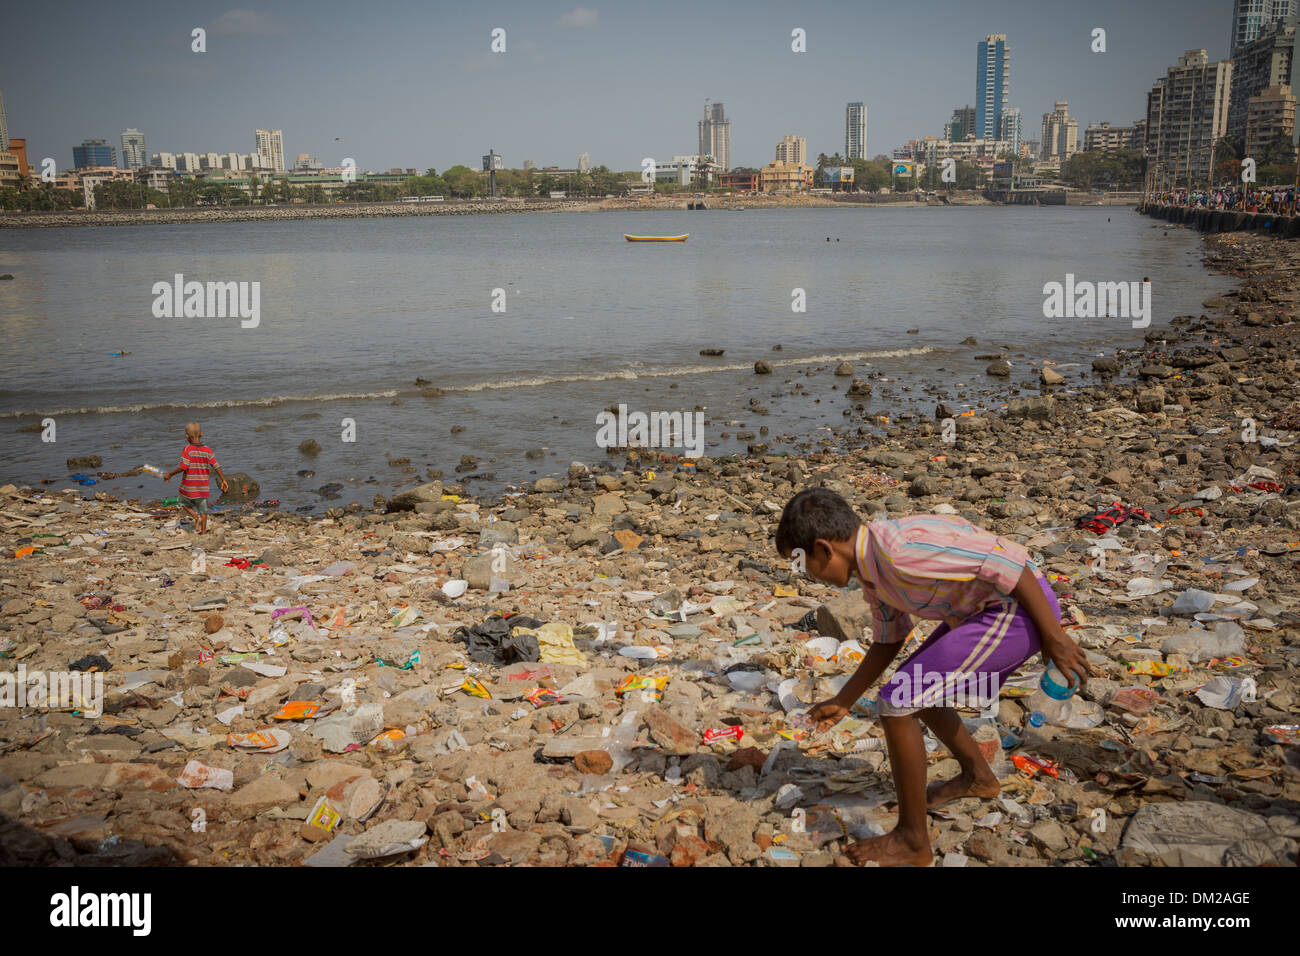 Child collecting rubbish in Mumbai (Bombay), India - Stock Image